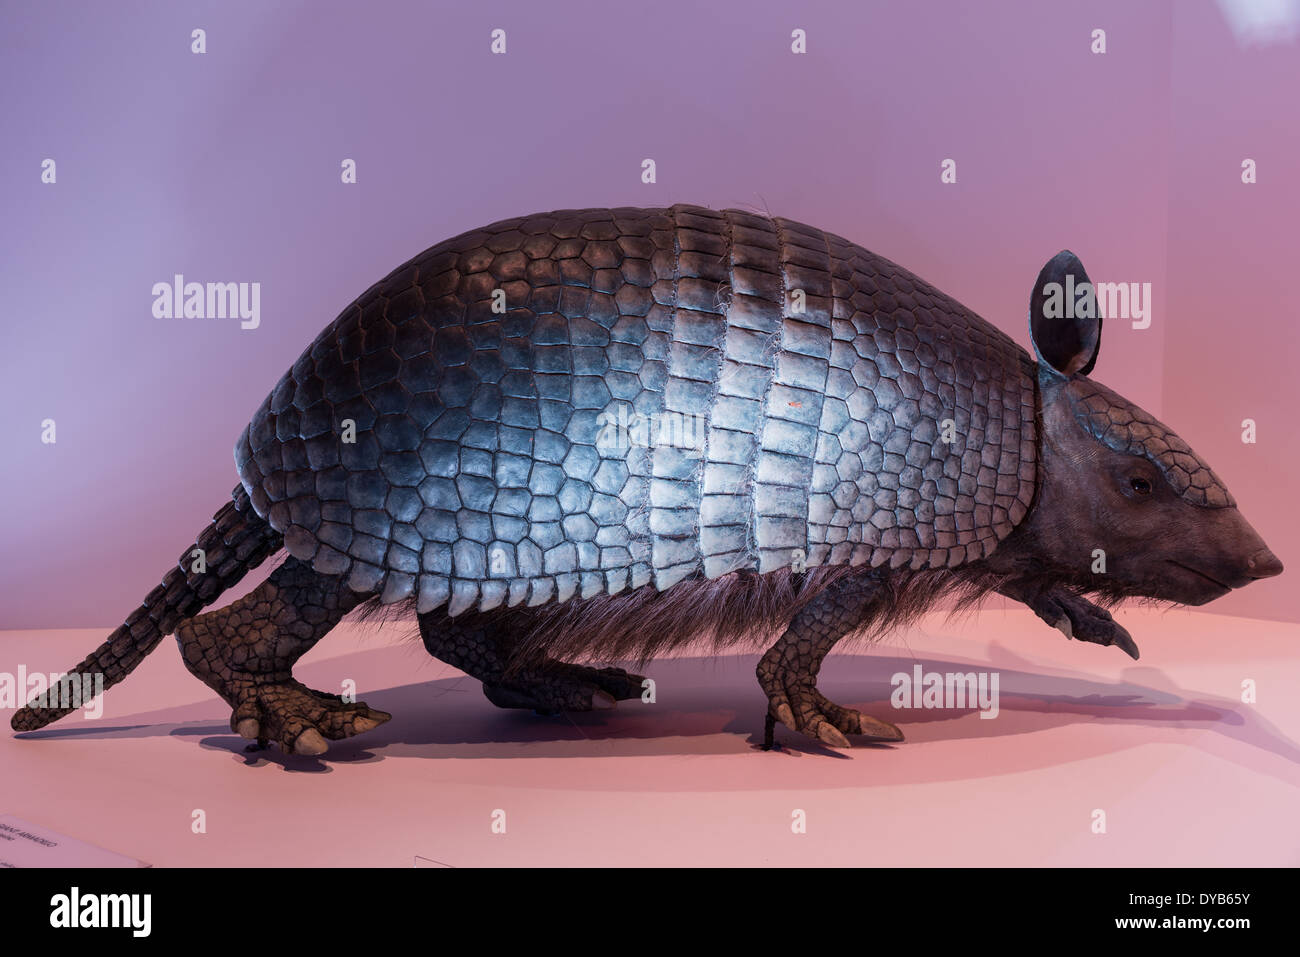 Model of an extinct giant armadillo (Holmesina) in display at a museum. - Stock Image